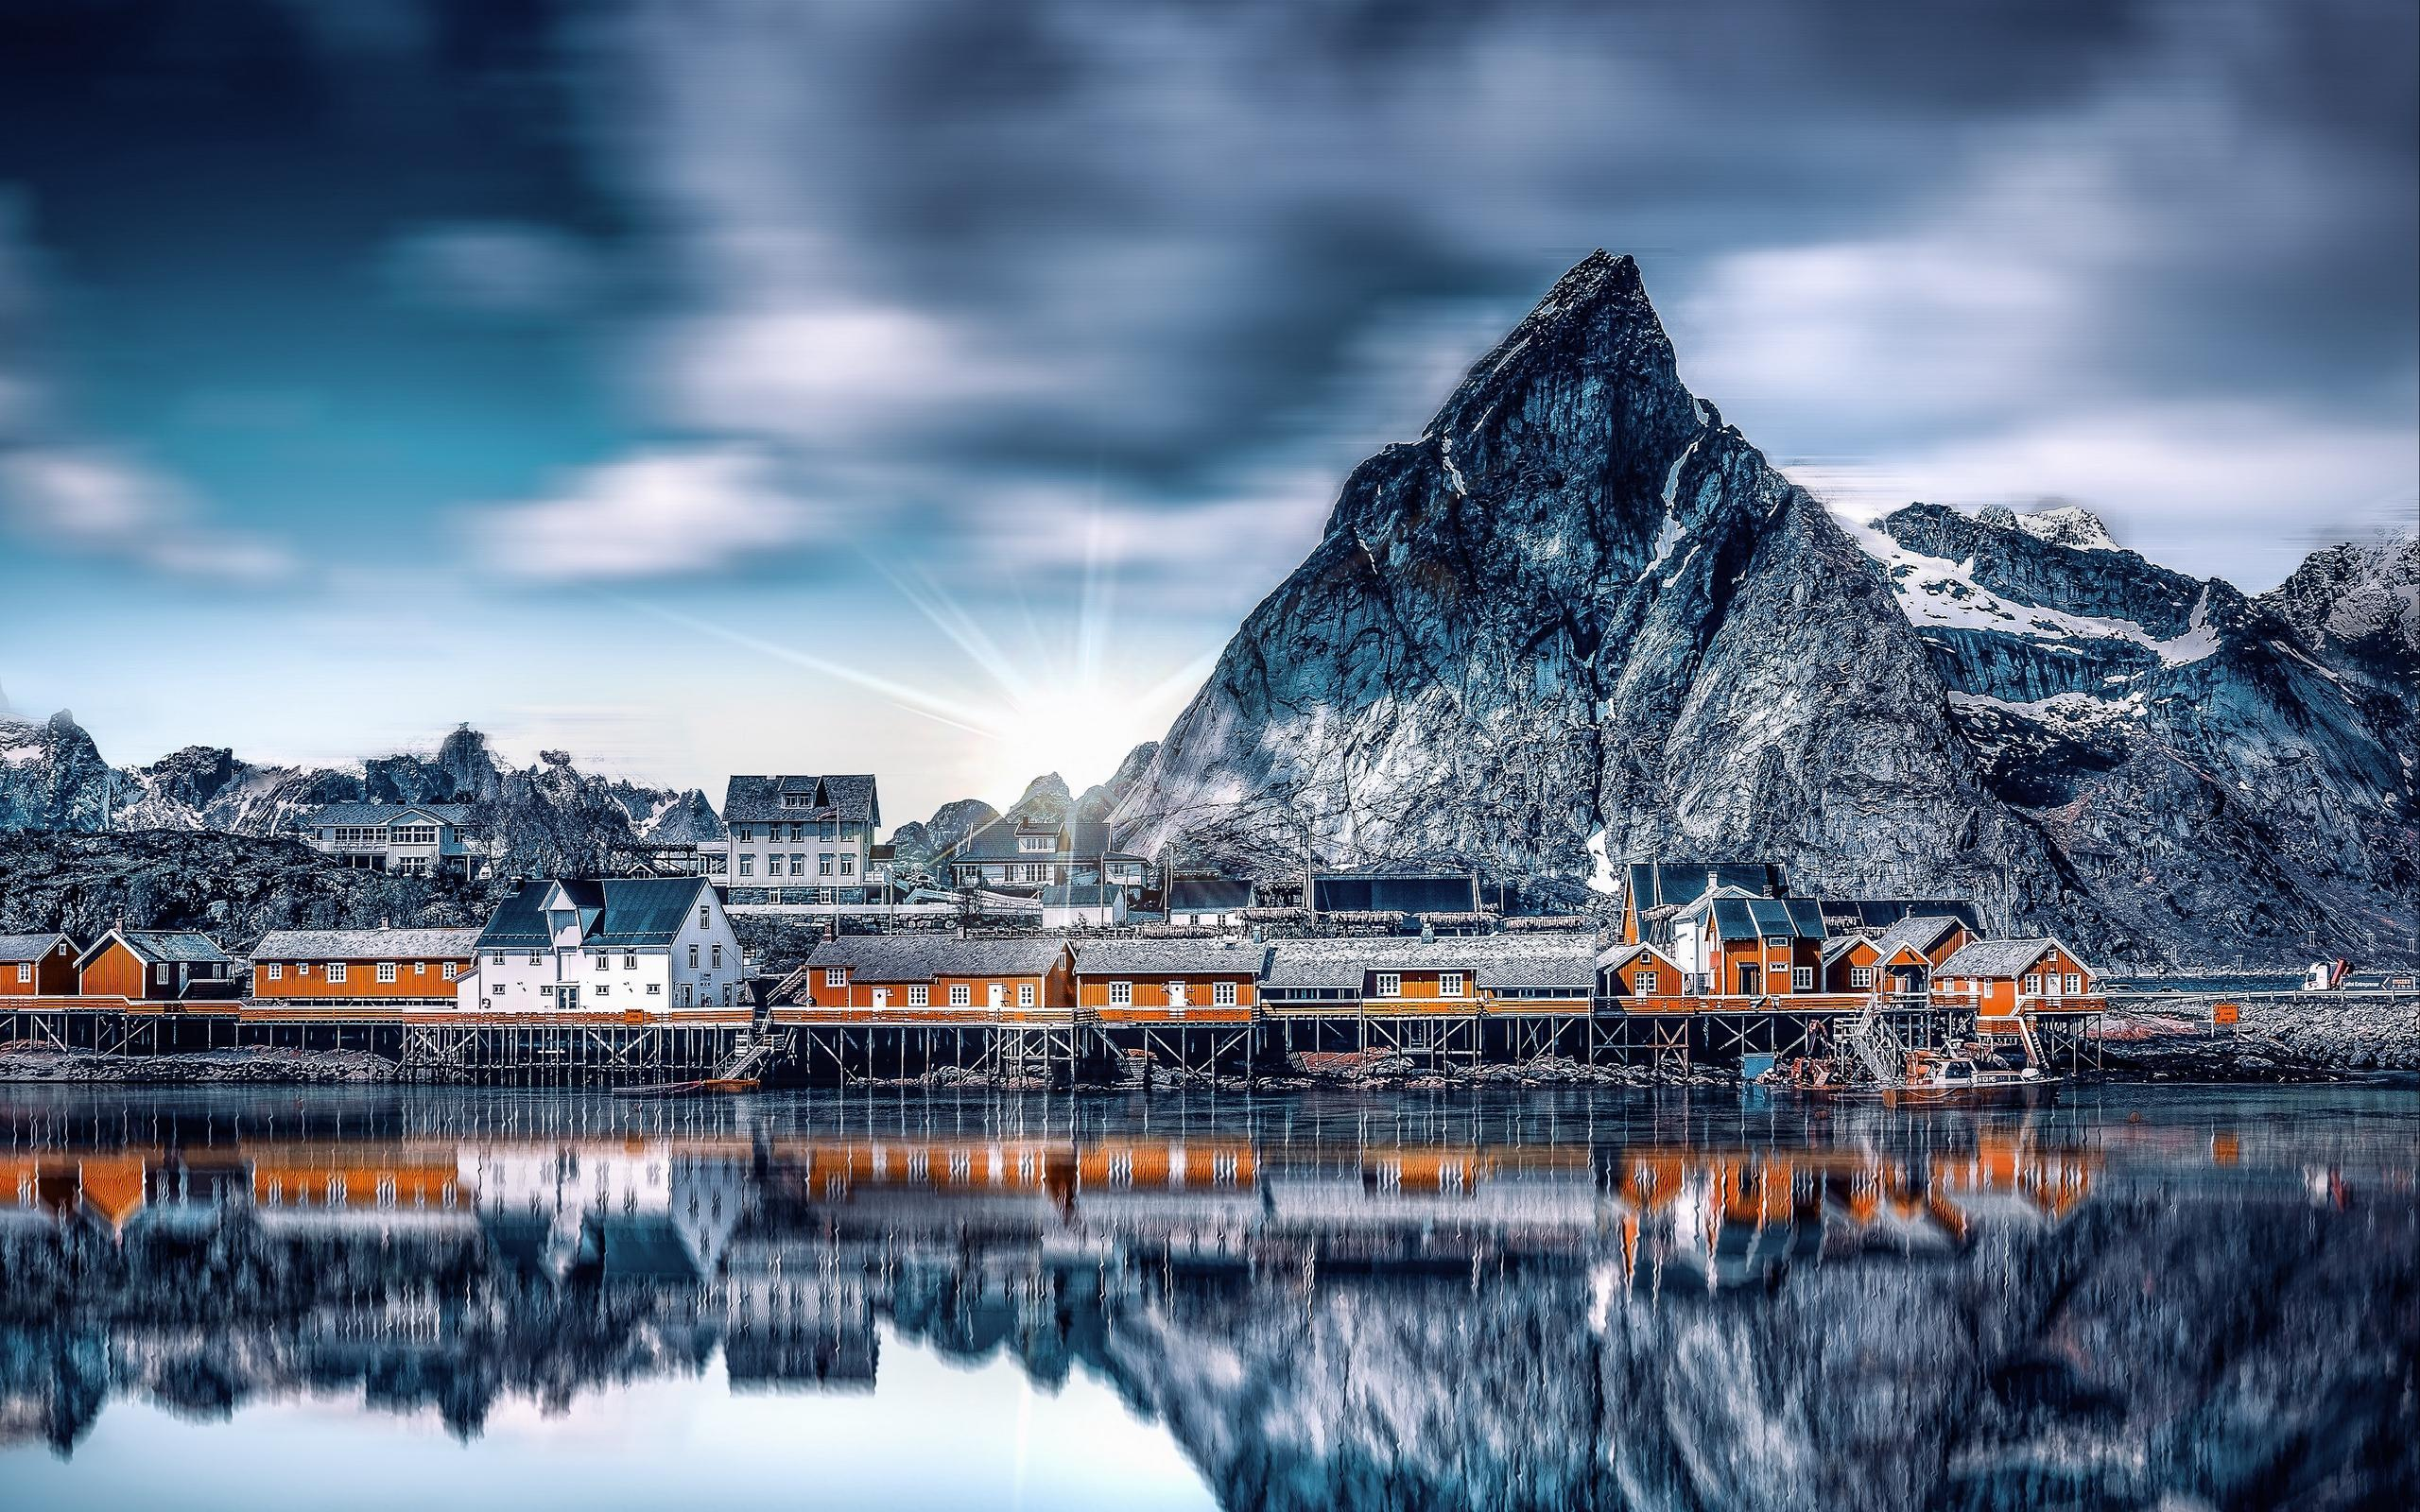 Download wallpapers 2560x1600 mountains, lake, buildings, reflection